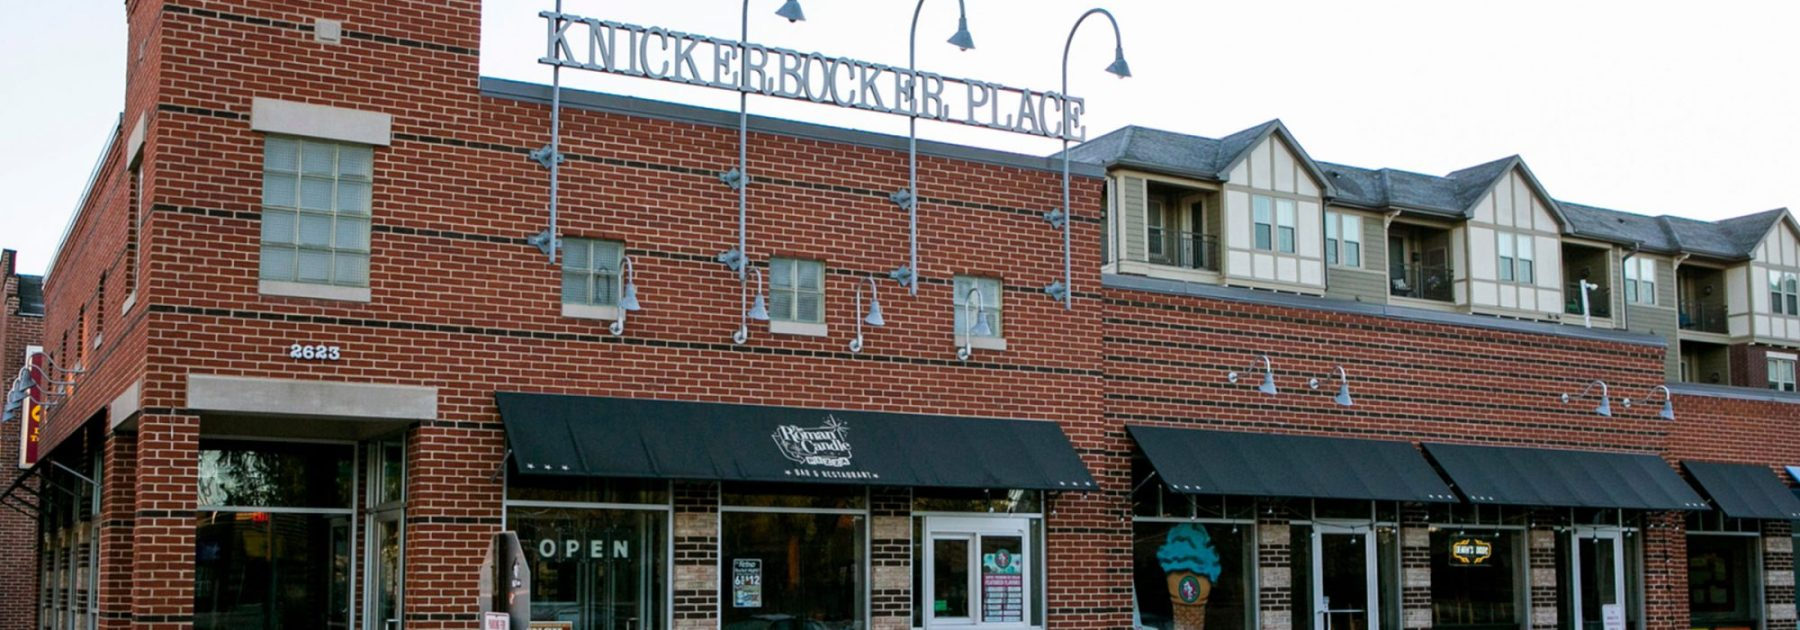 Knickerbocker Place retail shops